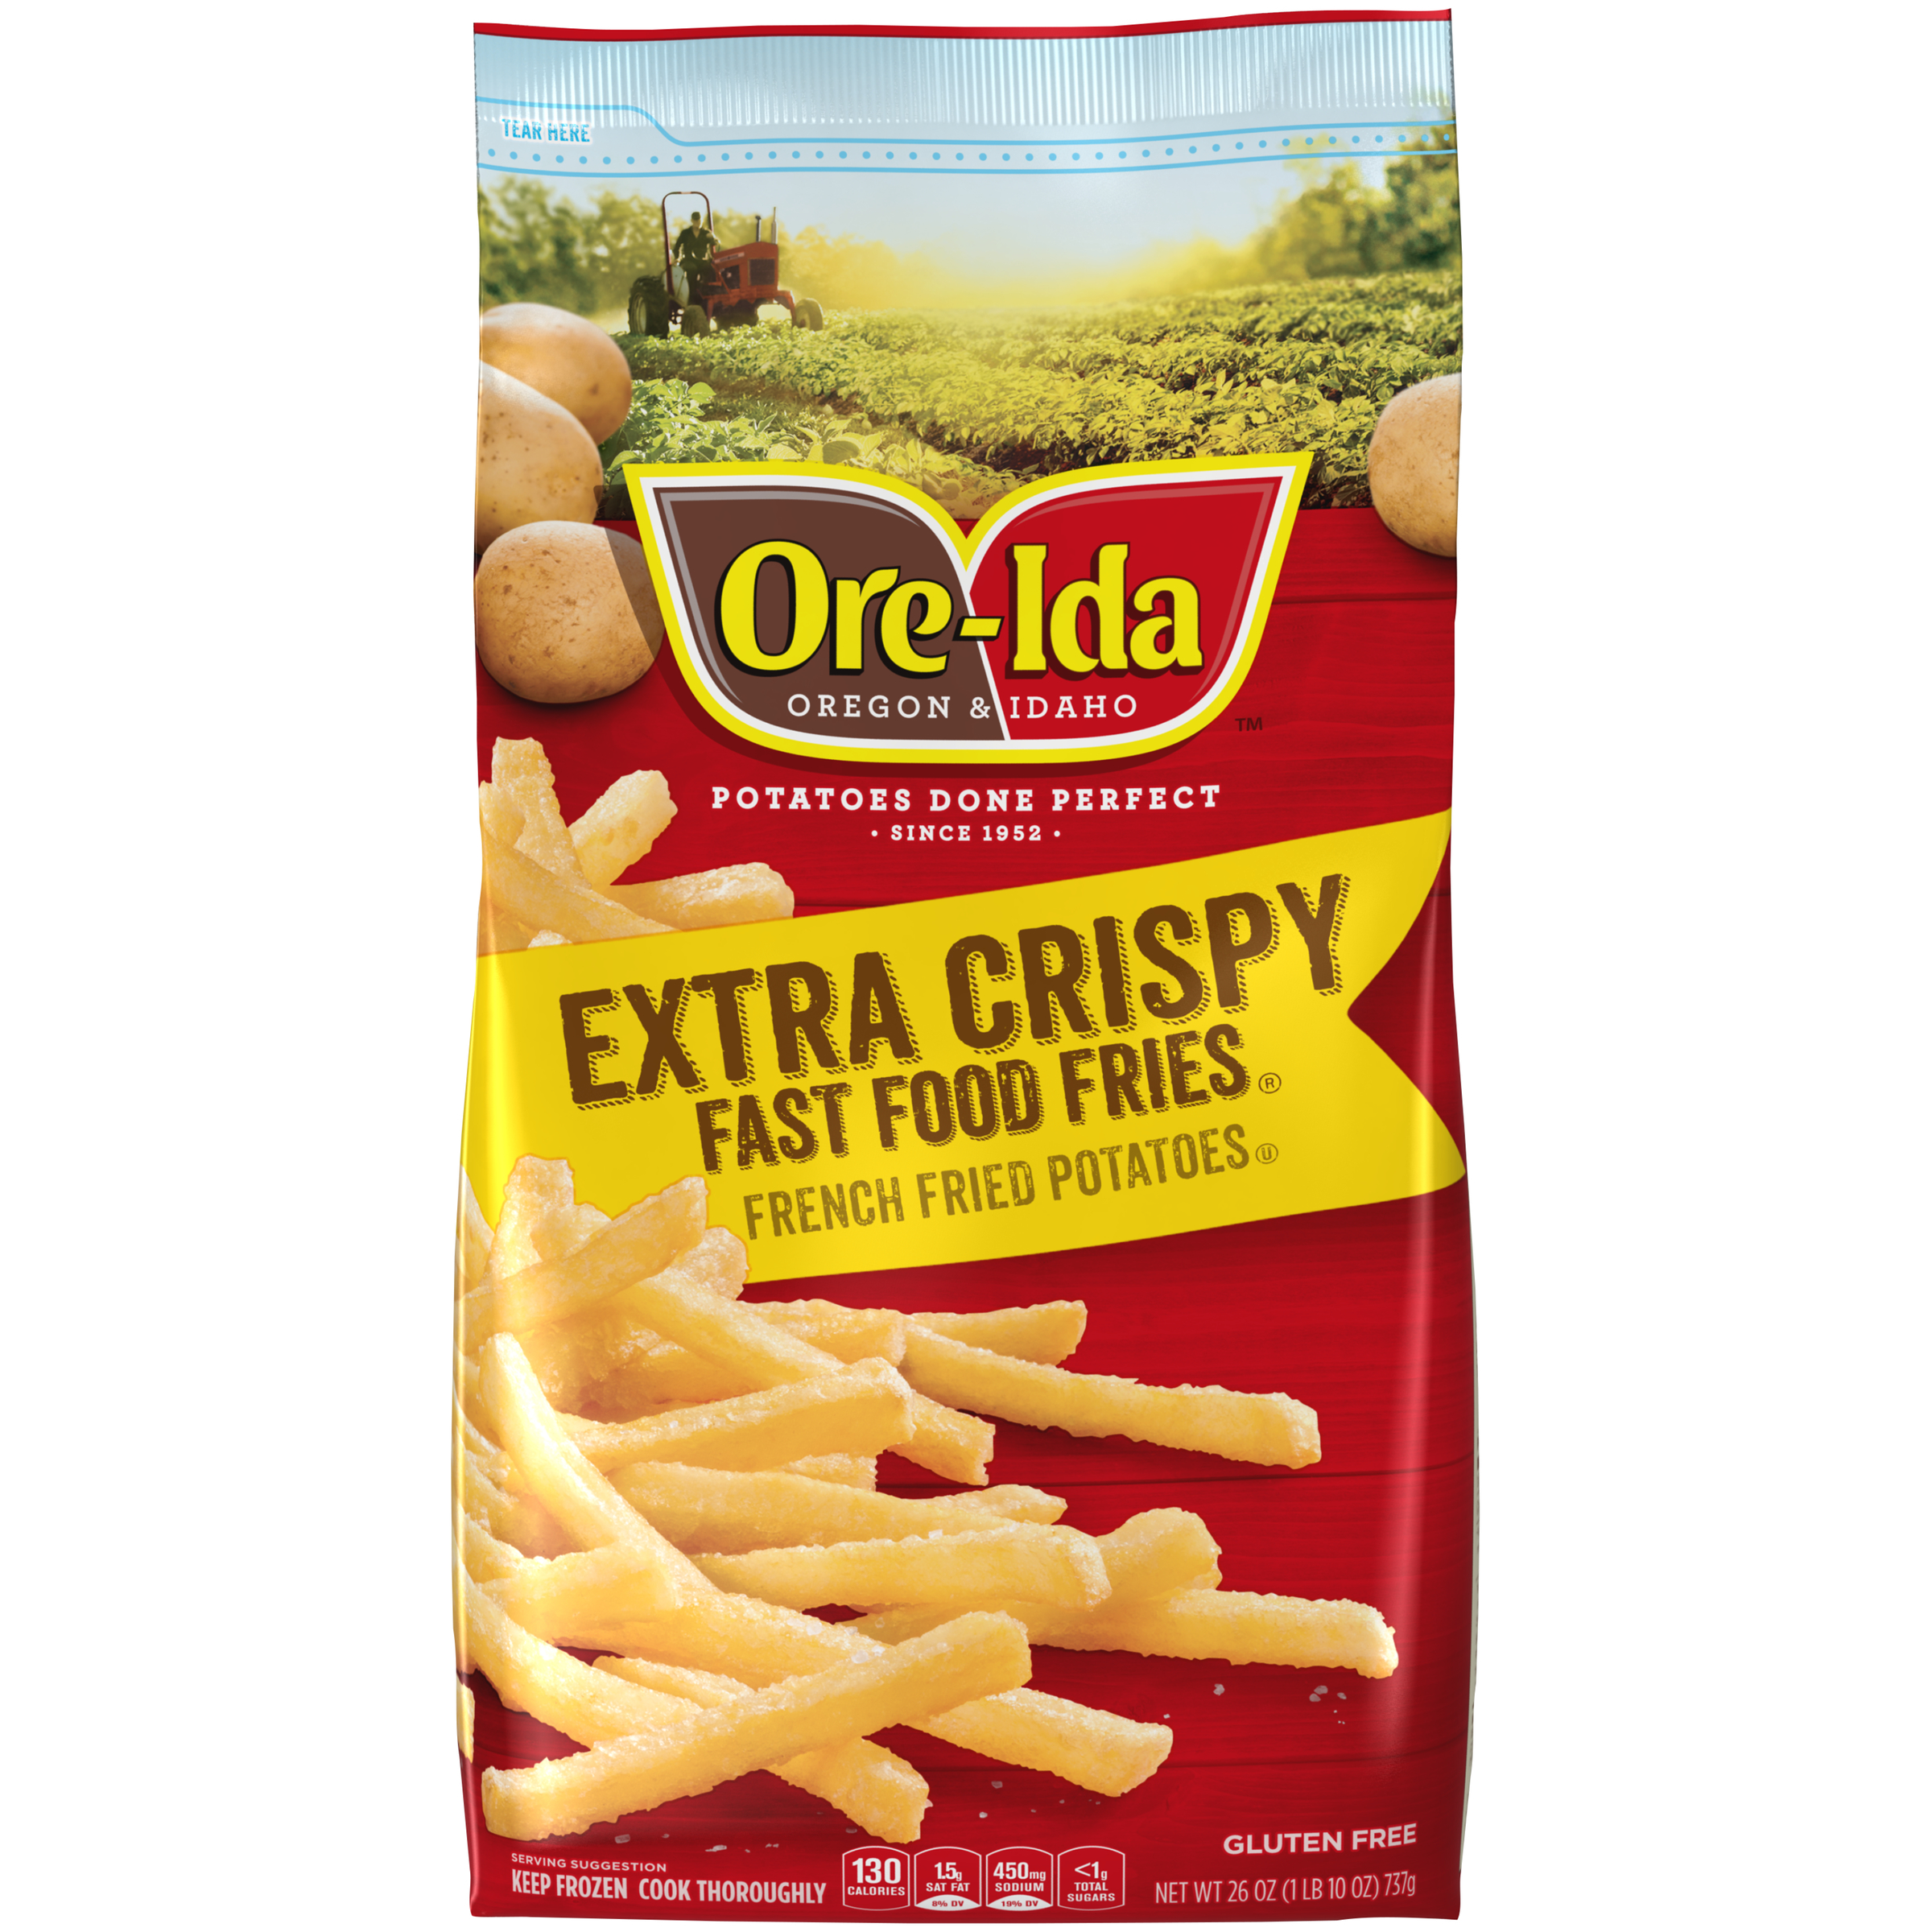 Ore-Ida Fast Food Fries Extra Crispy French Fried Potatoes